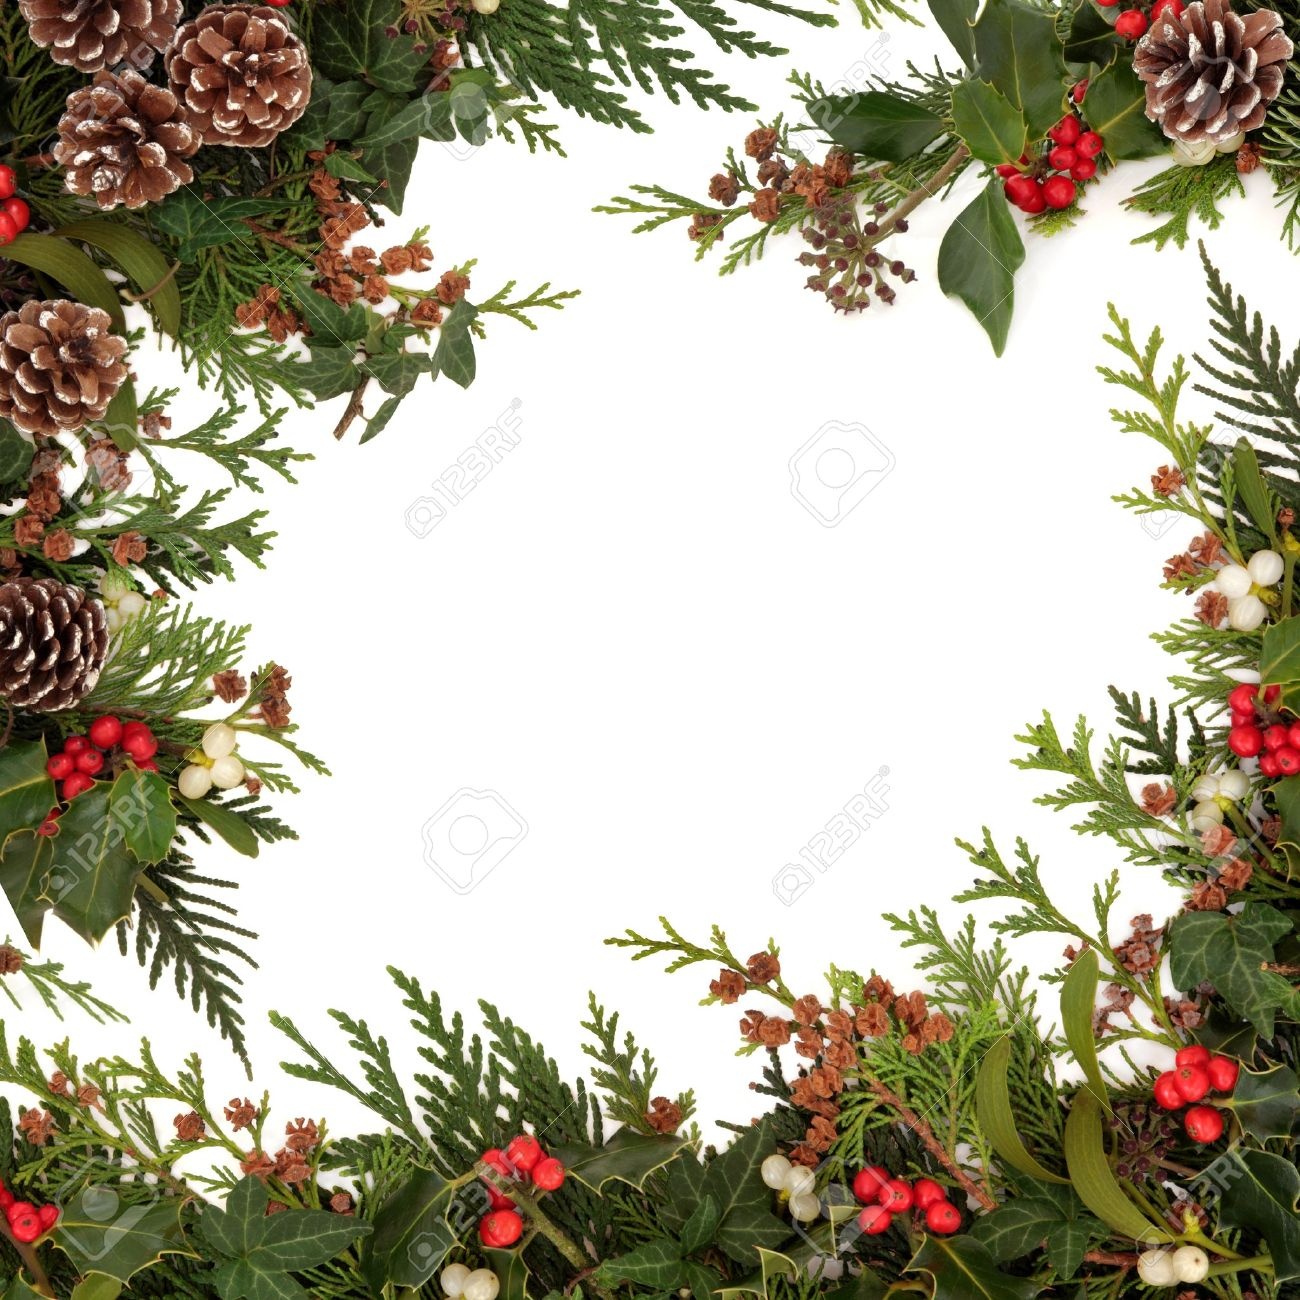 Why is holly a traditional christmas decoration - Winter And Christmas Traditional Border Of Holly Ivy Mistletoe And Cedar Cypress Leaf Sprigs